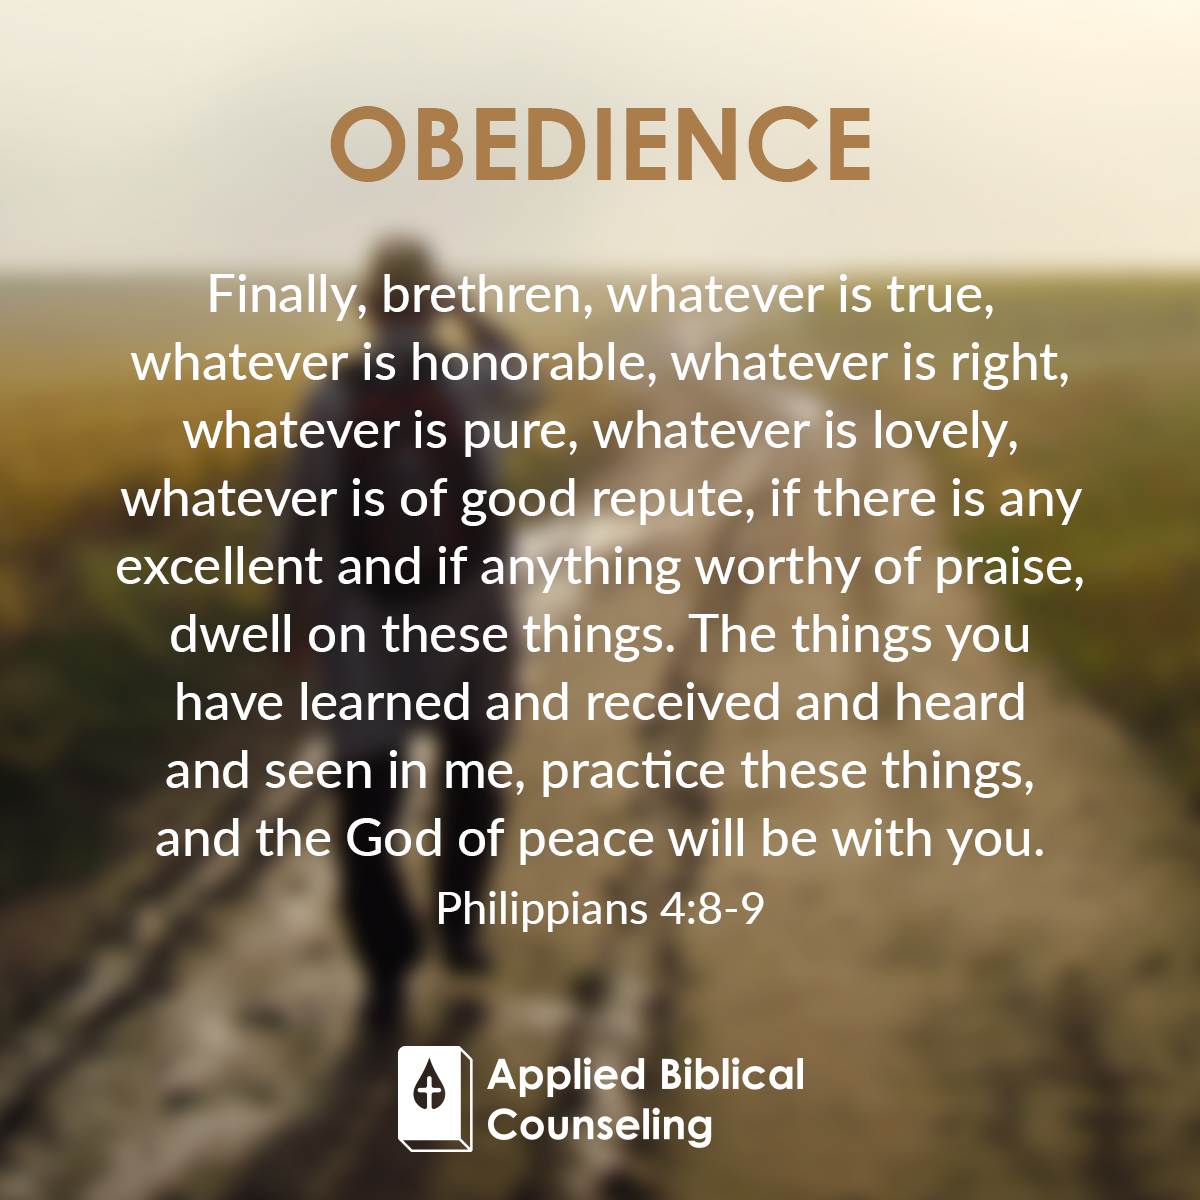 Applied Biblical Counseling Facebook w23 Obedience 5